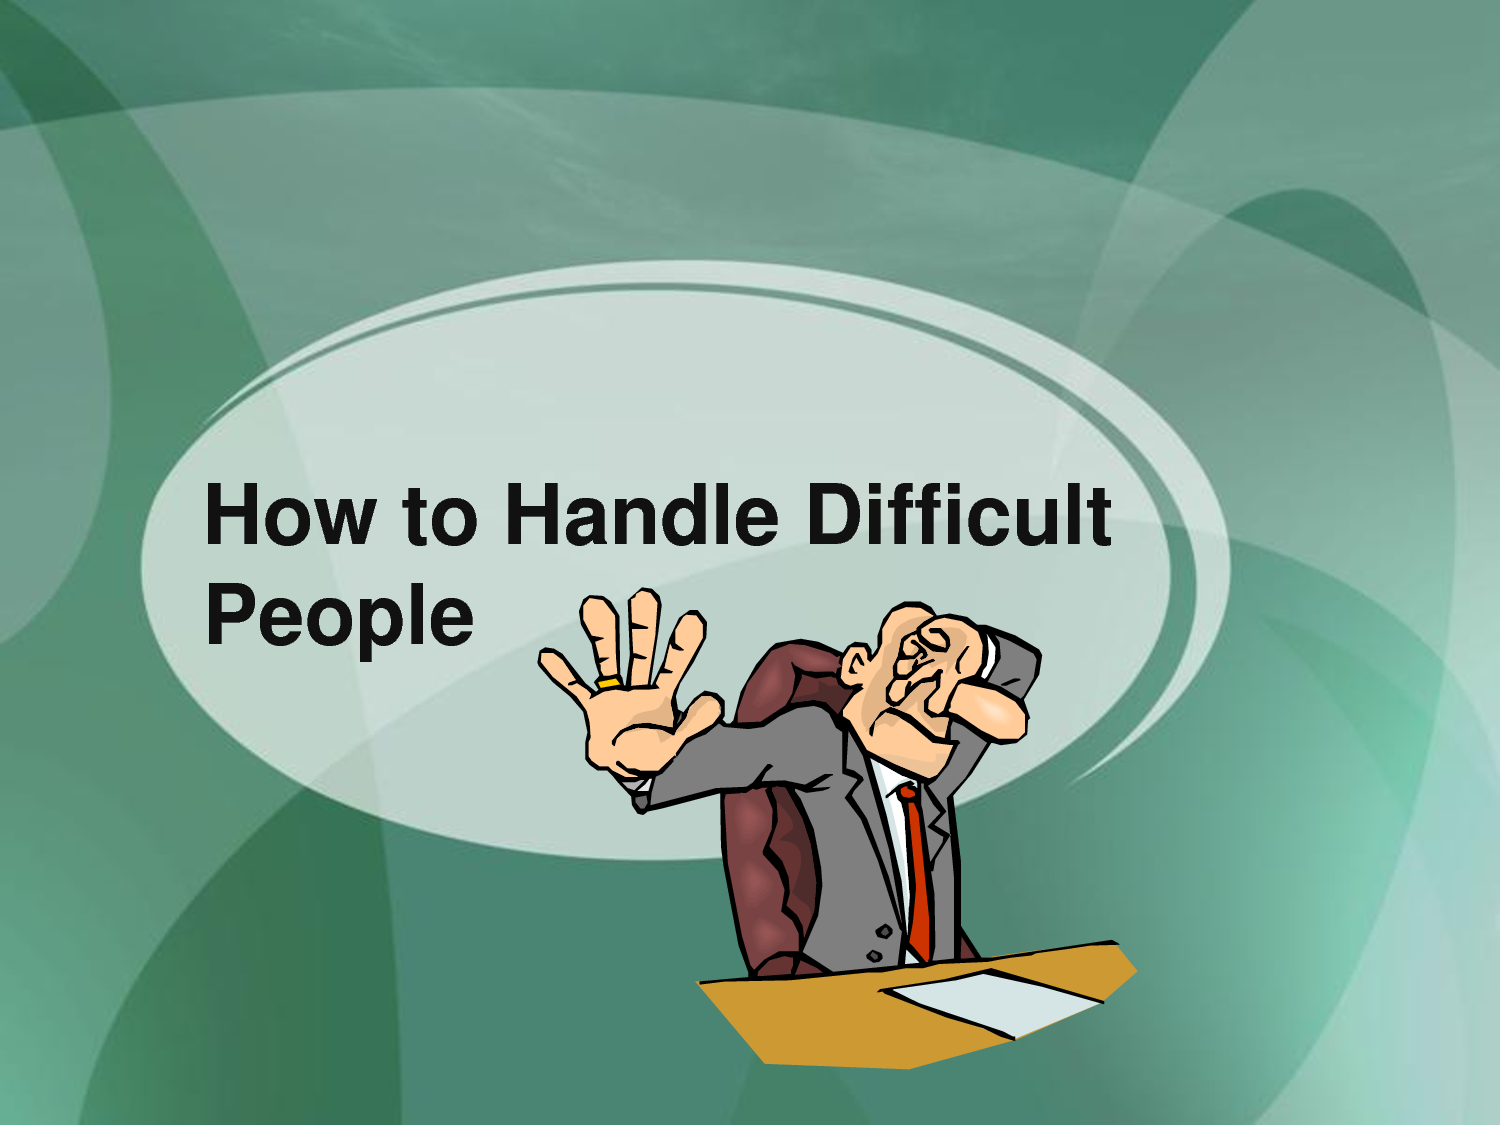 handling difficult people quotes quotesgram